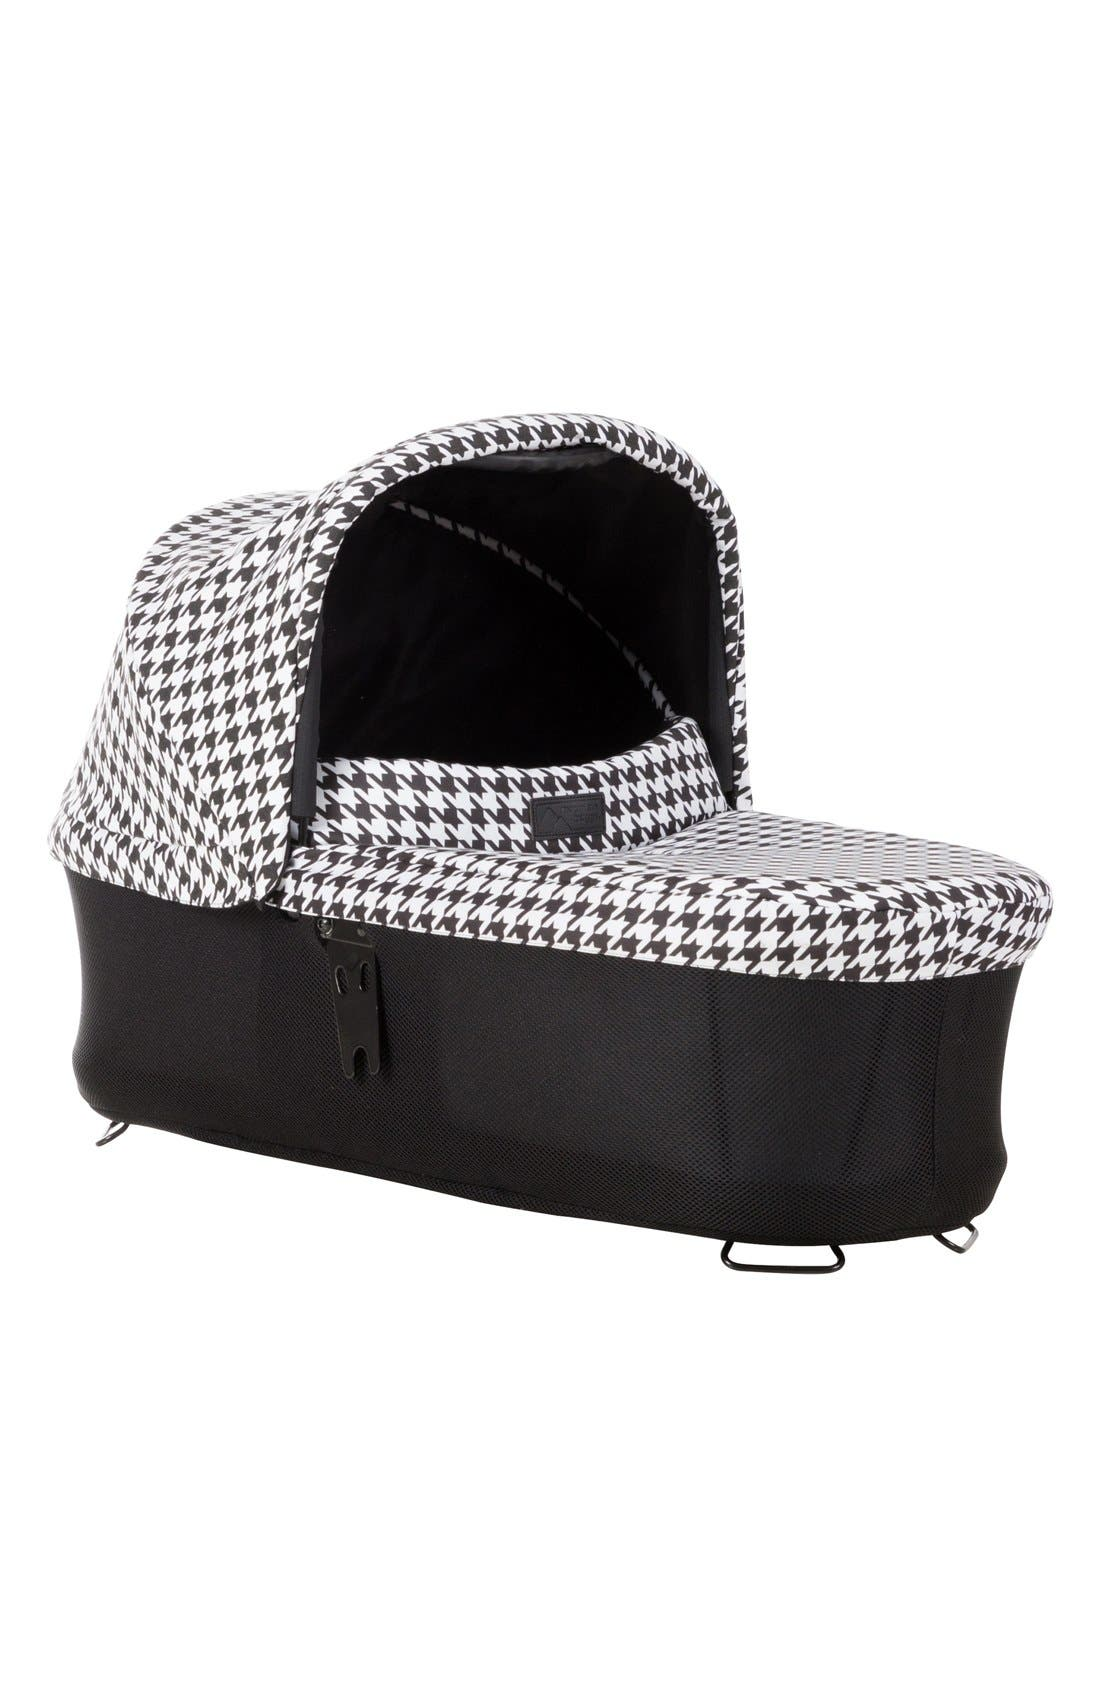 Urban Jungle - The Luxury Collection Carrycot Plus,                         Main,                         color, PEPITA